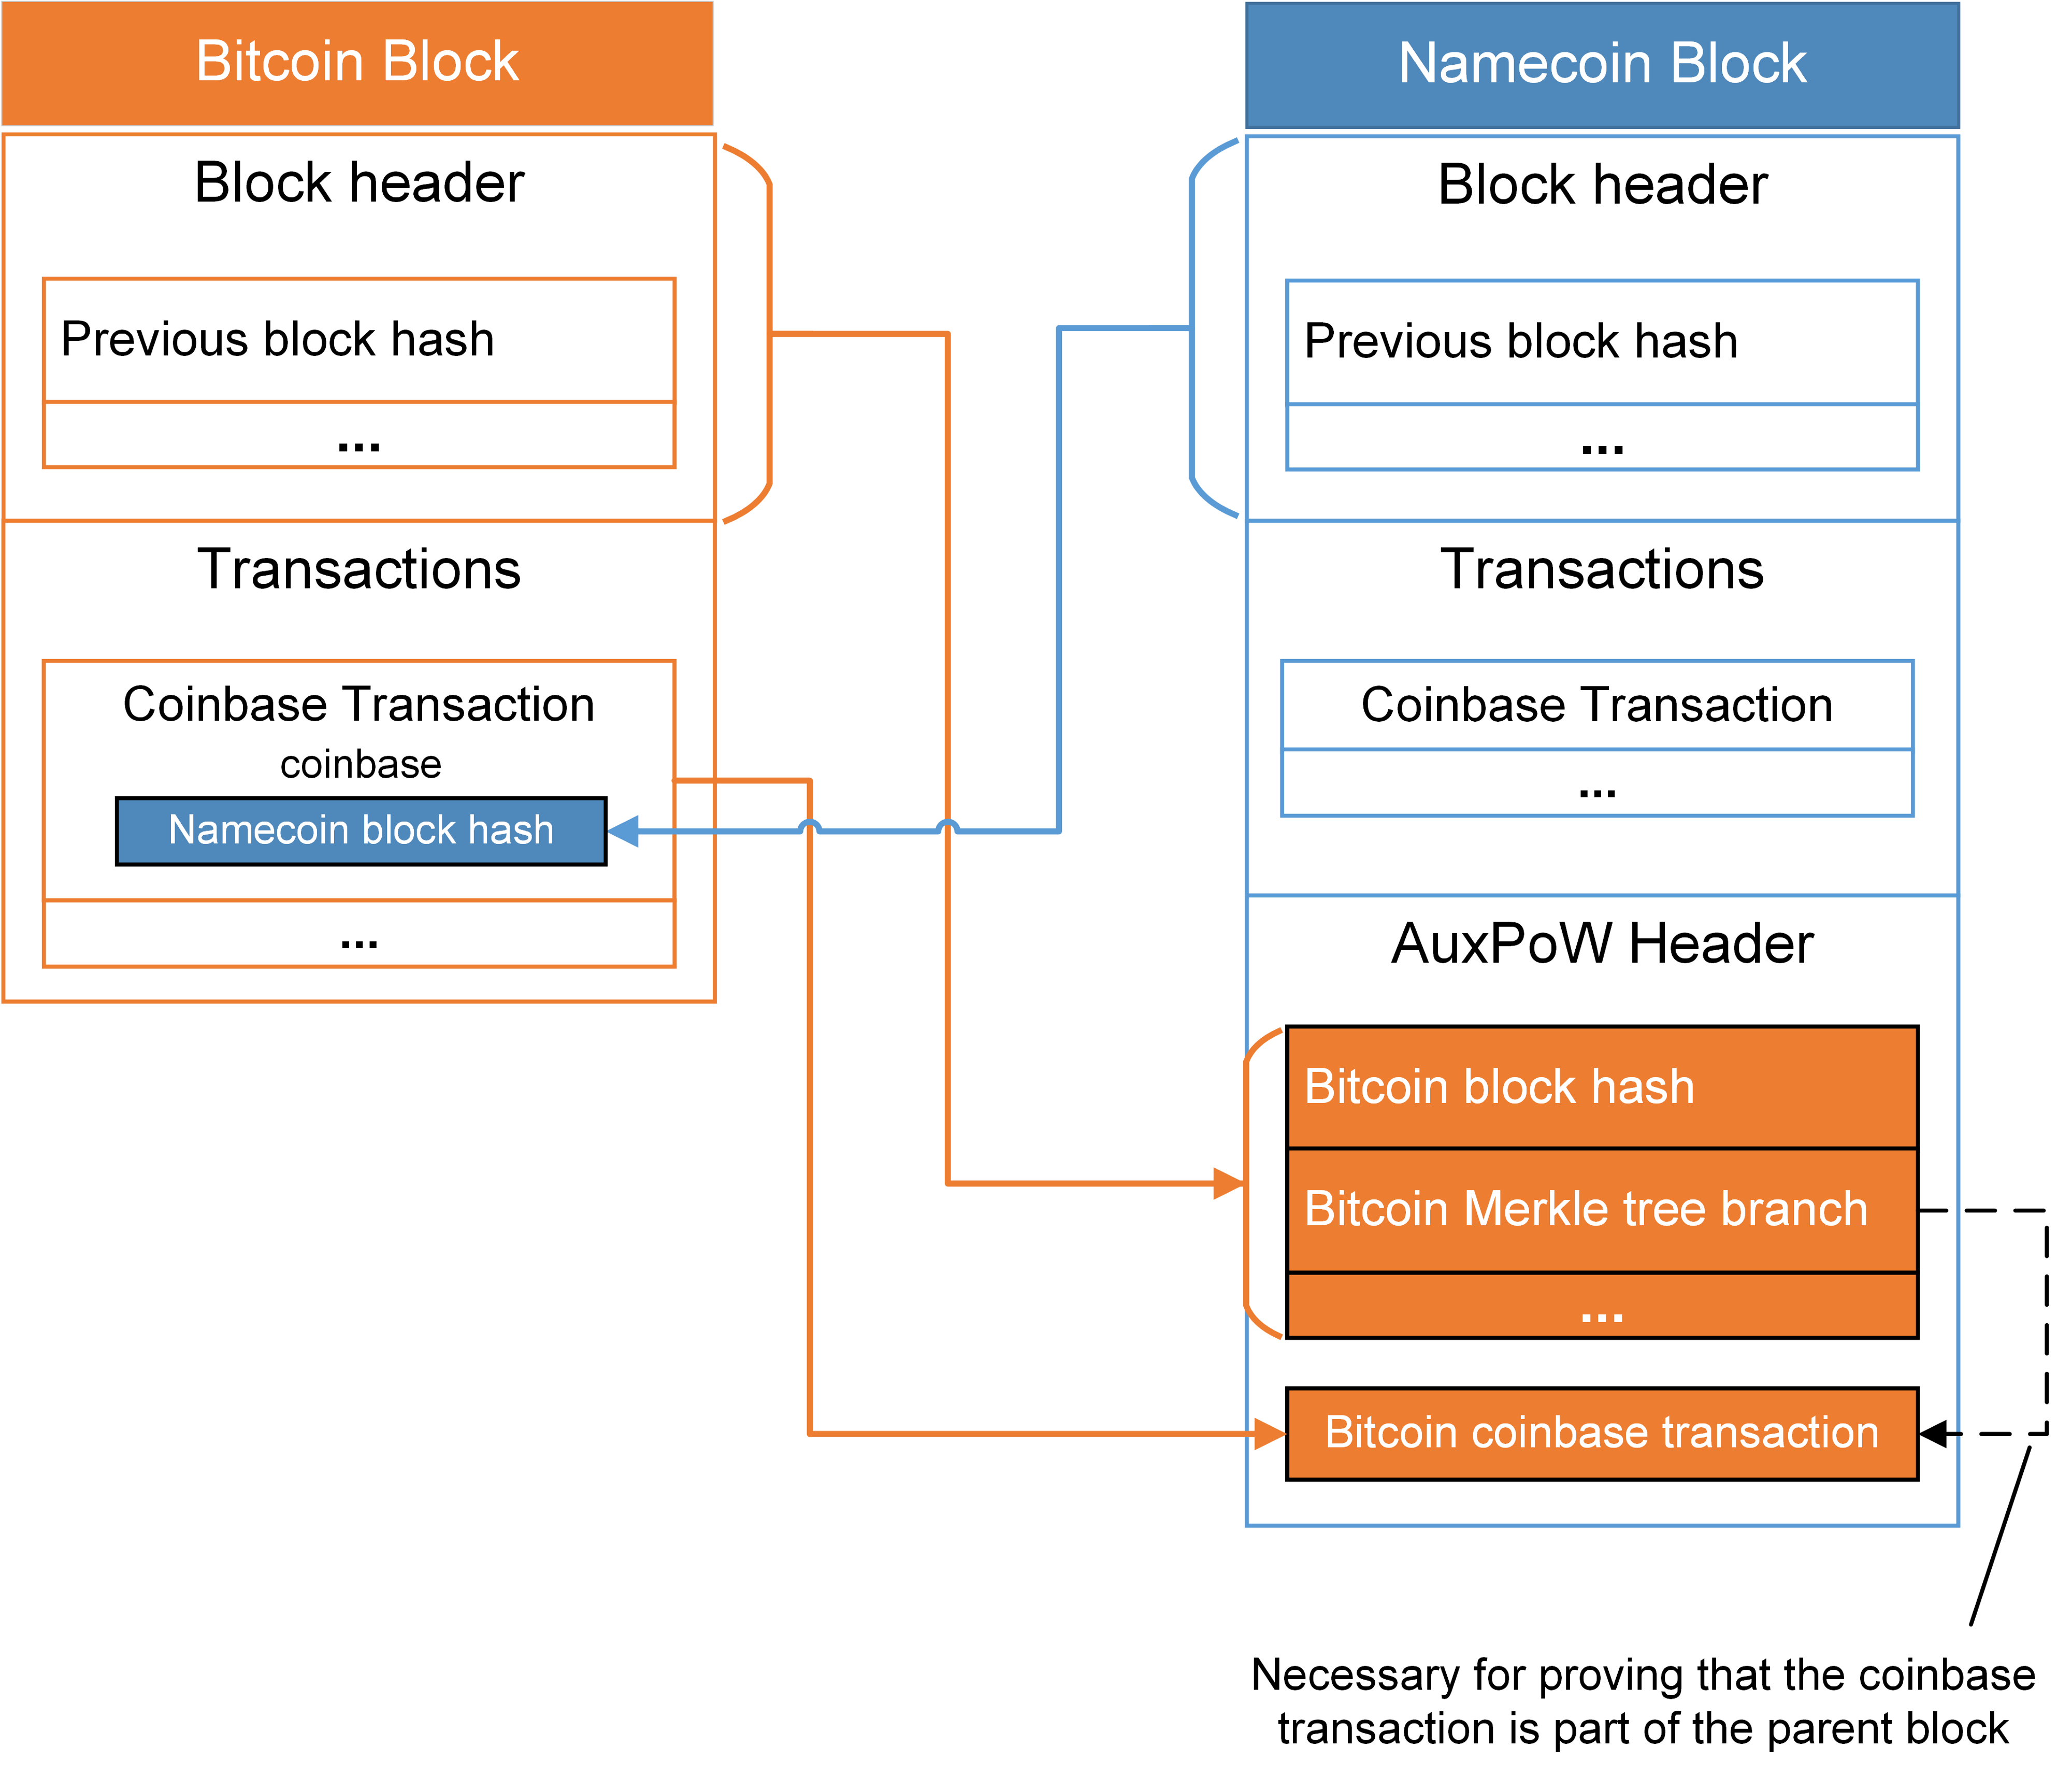 Structure of merged mined blocks in Namecoin. The block hash of the to-be-mined Namecoin block is included in the coinbase field of the Bitcoin block. Once a fitting PoW solution is found, information from the Bitcoin block header and the coinbase transaction are included in the Namecoin block. Note: the Bitcoin Merkle tree branch is necessary to verify that the included coinbase transaction was part of the respective Bitcoin block.